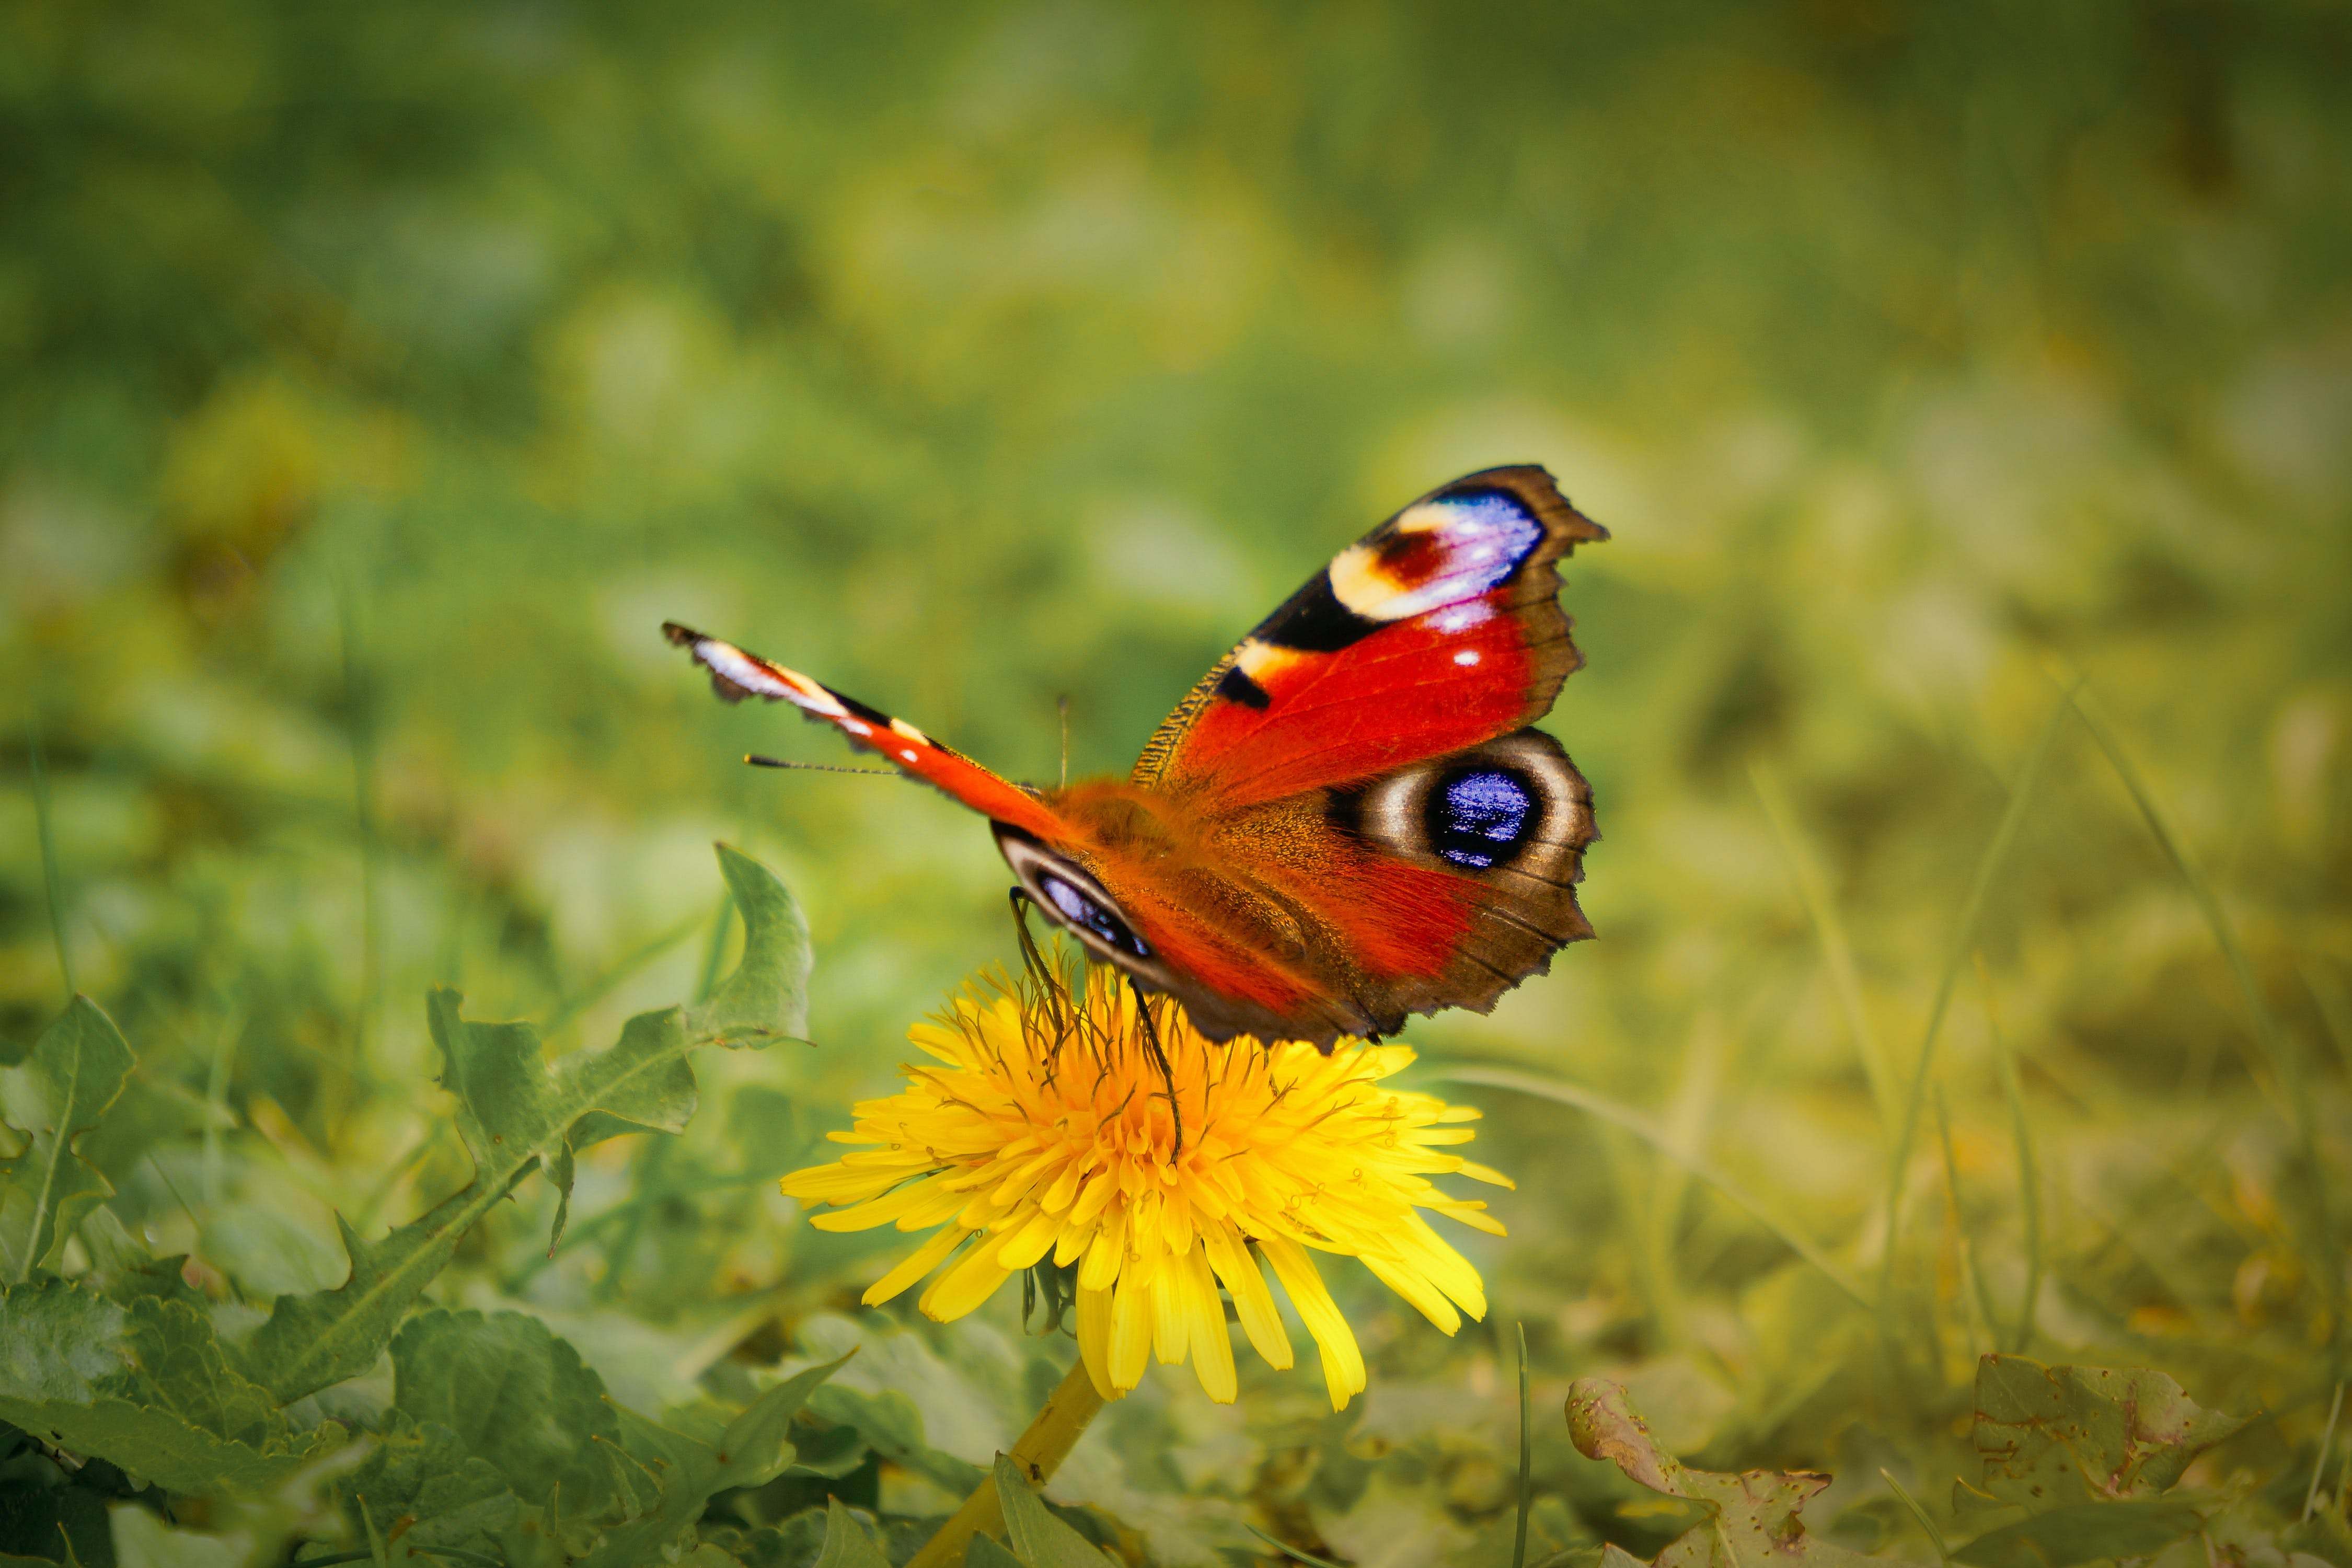 Red, Brown, and Black Butterfly on Yellow Daisy Flower